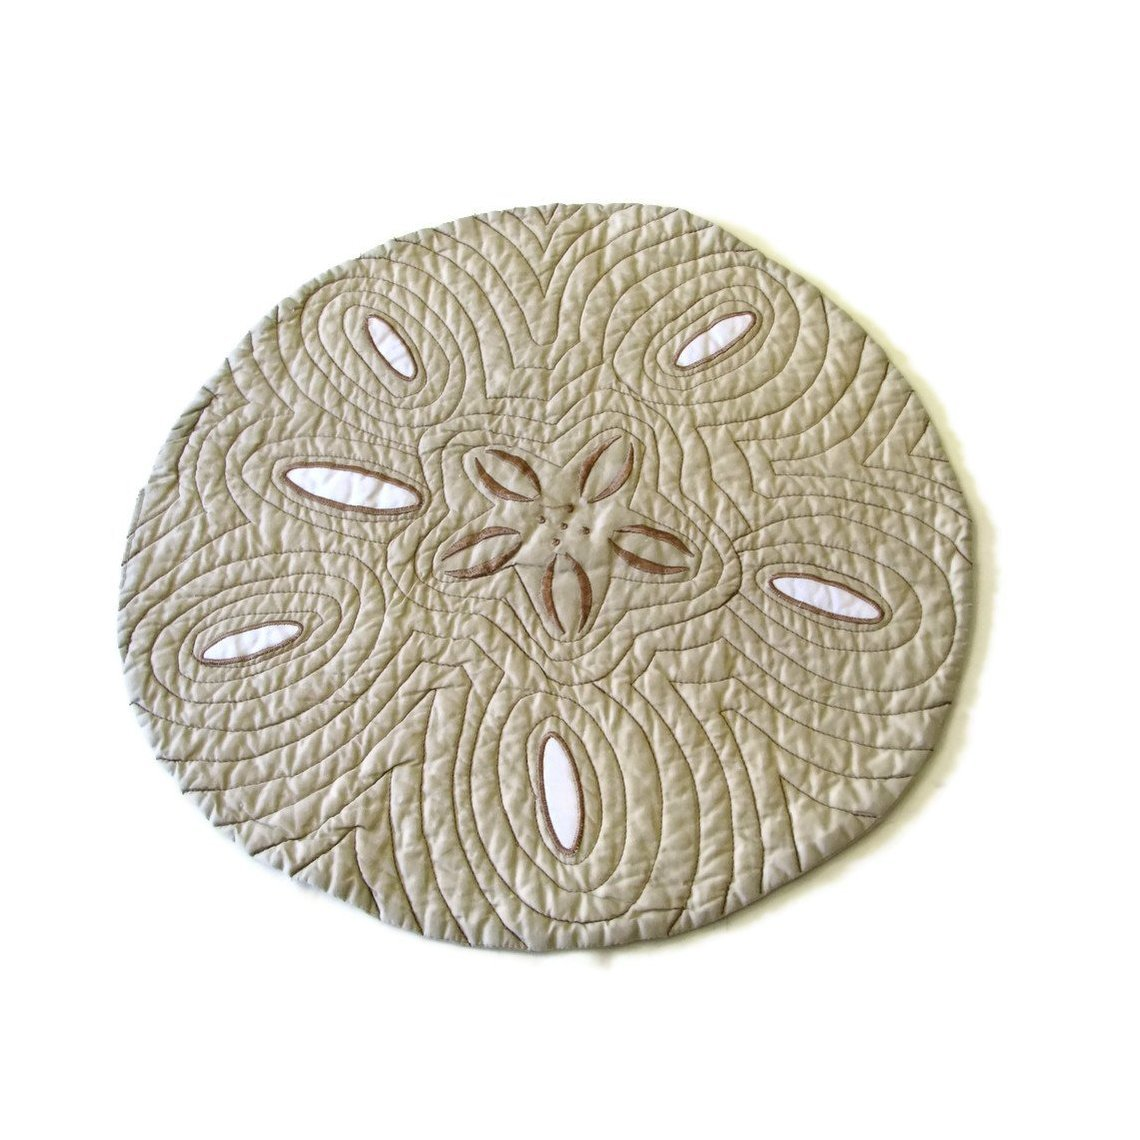 How to make dining table mats at home - Ocean Beach Sand Dollar Reversible Placemats Set Of 4